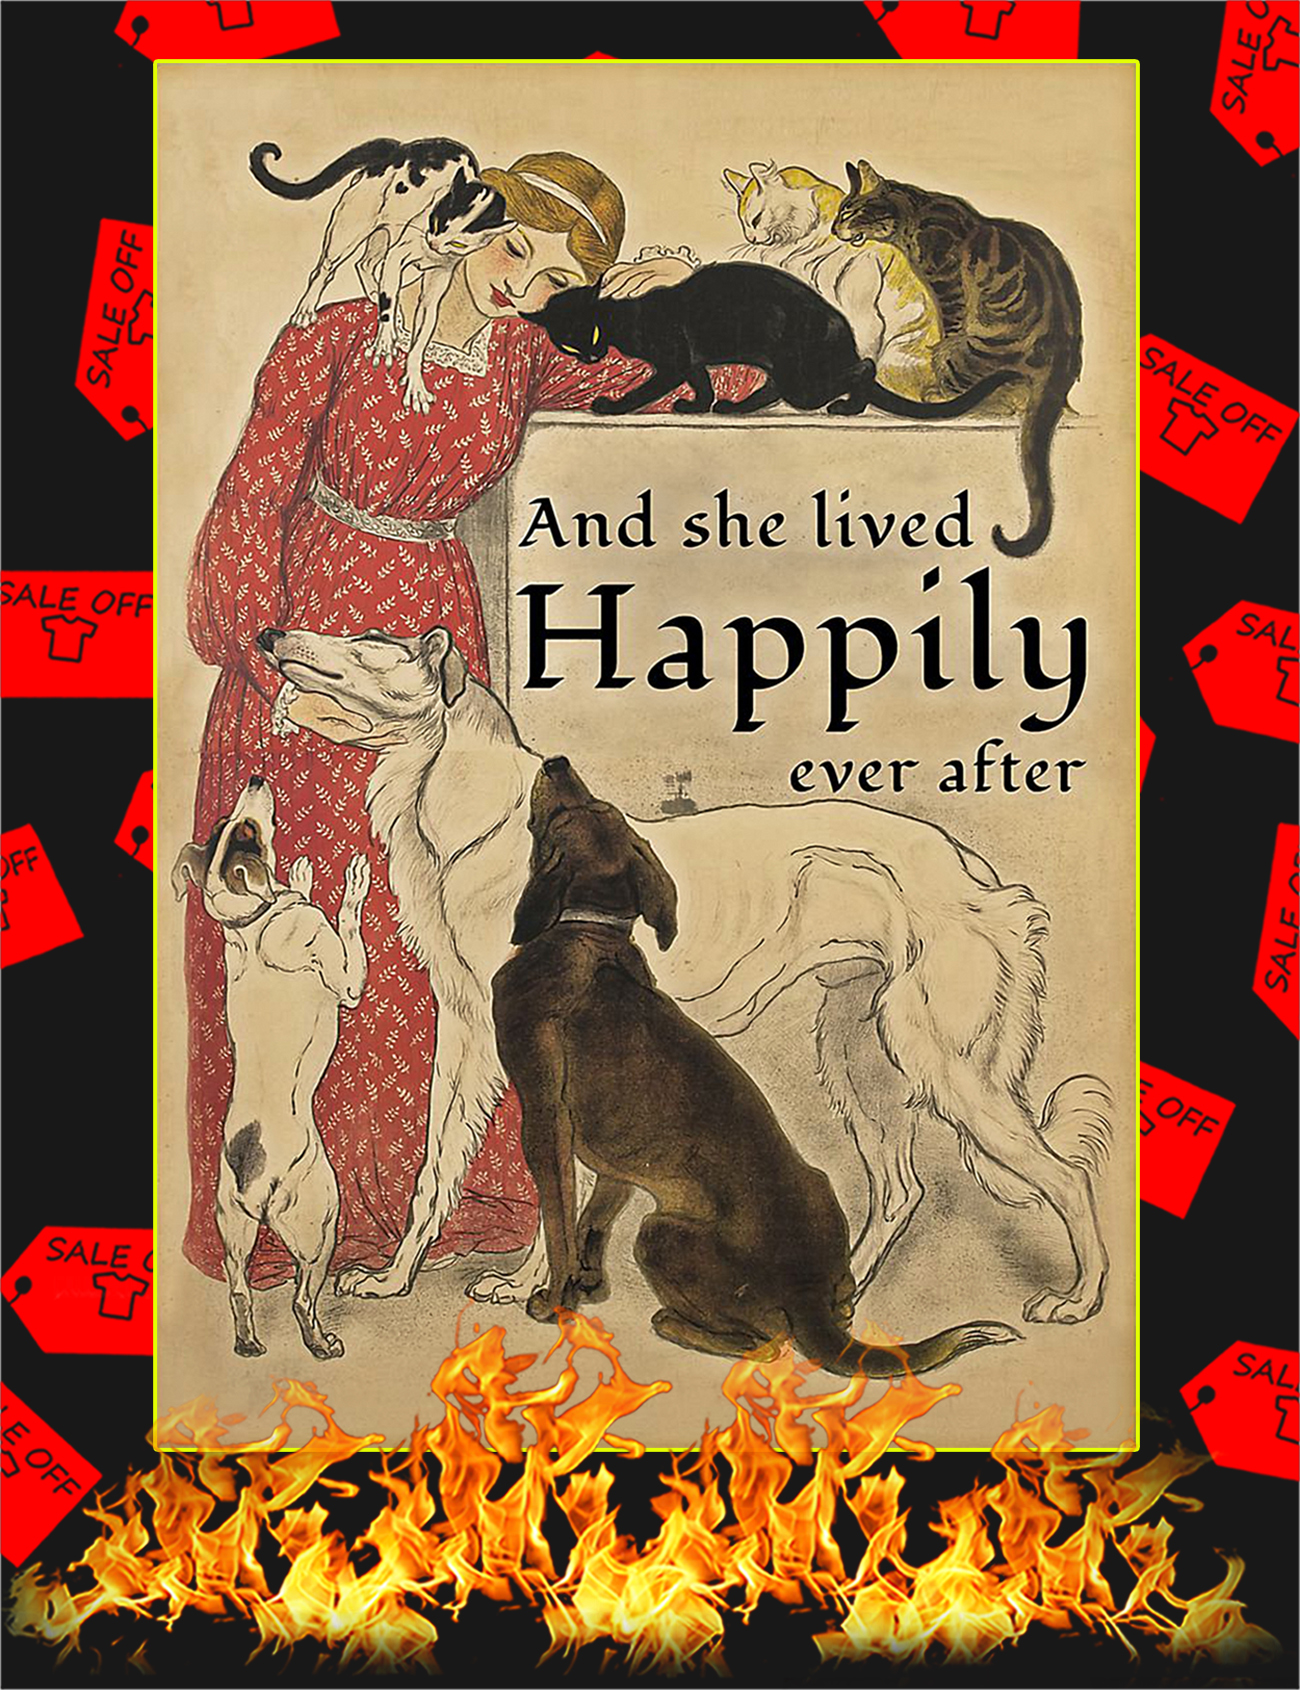 Dog and cat And she lived happily ever after poster - A1